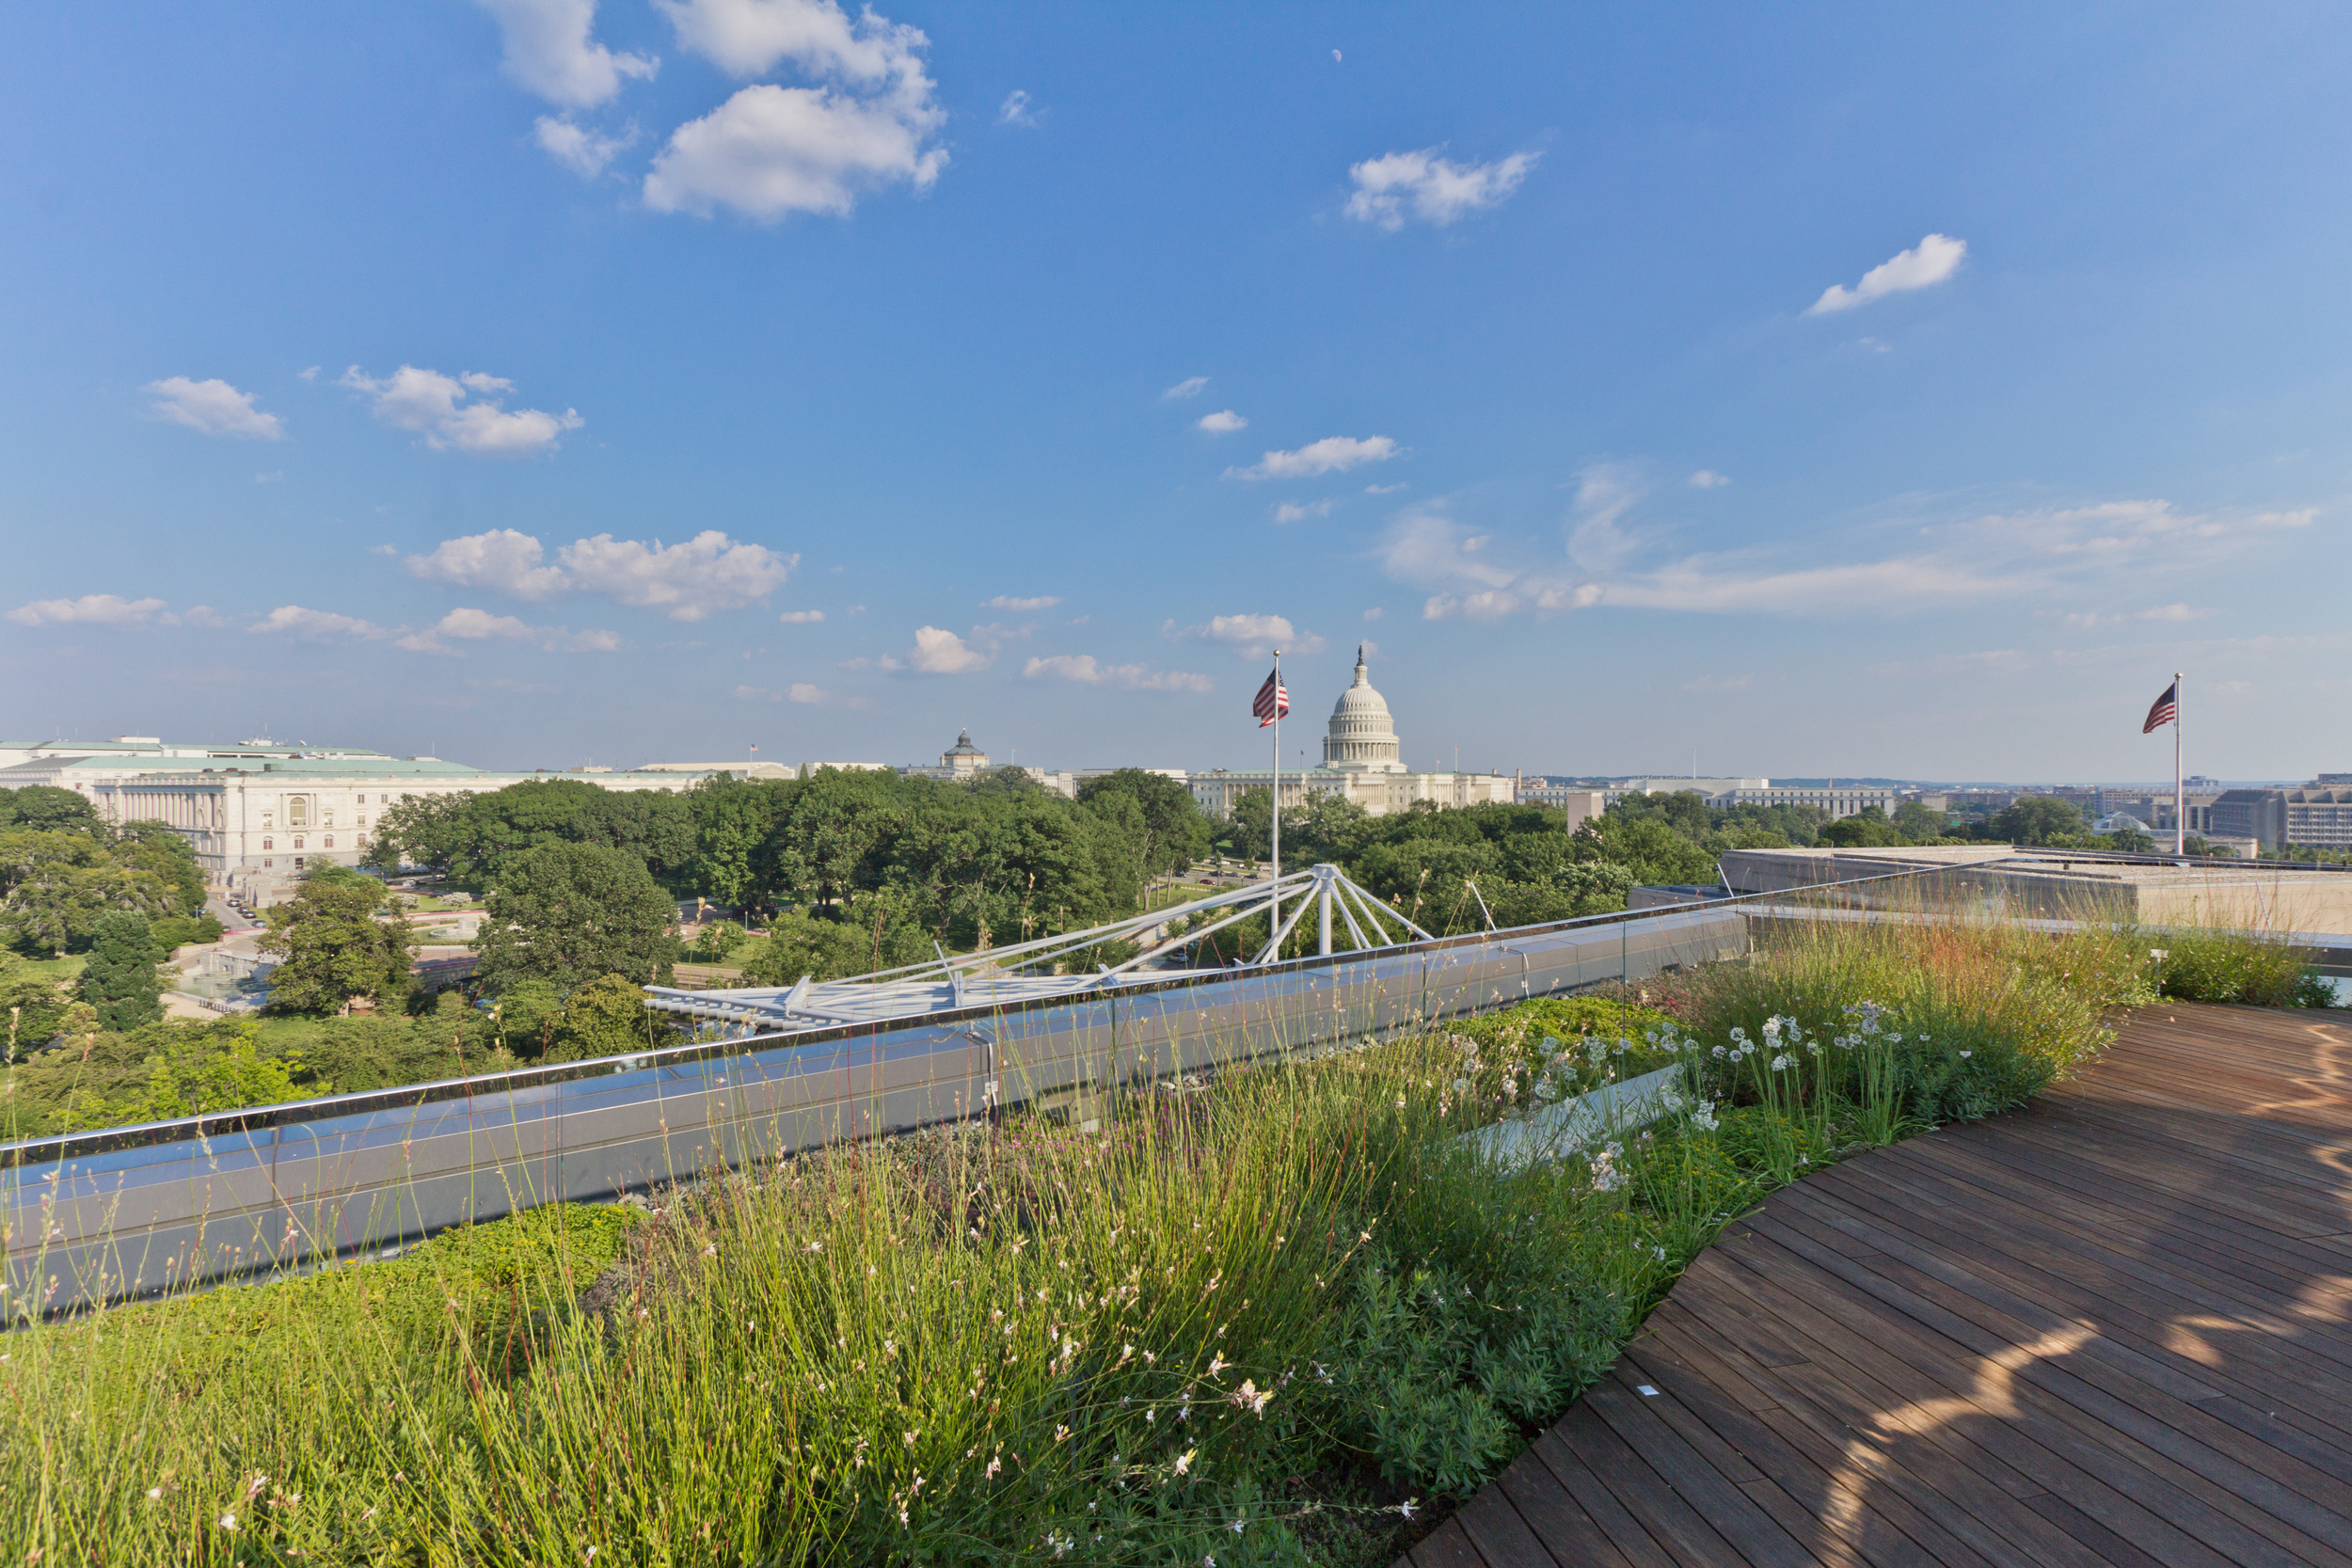 A great view of the Capitol